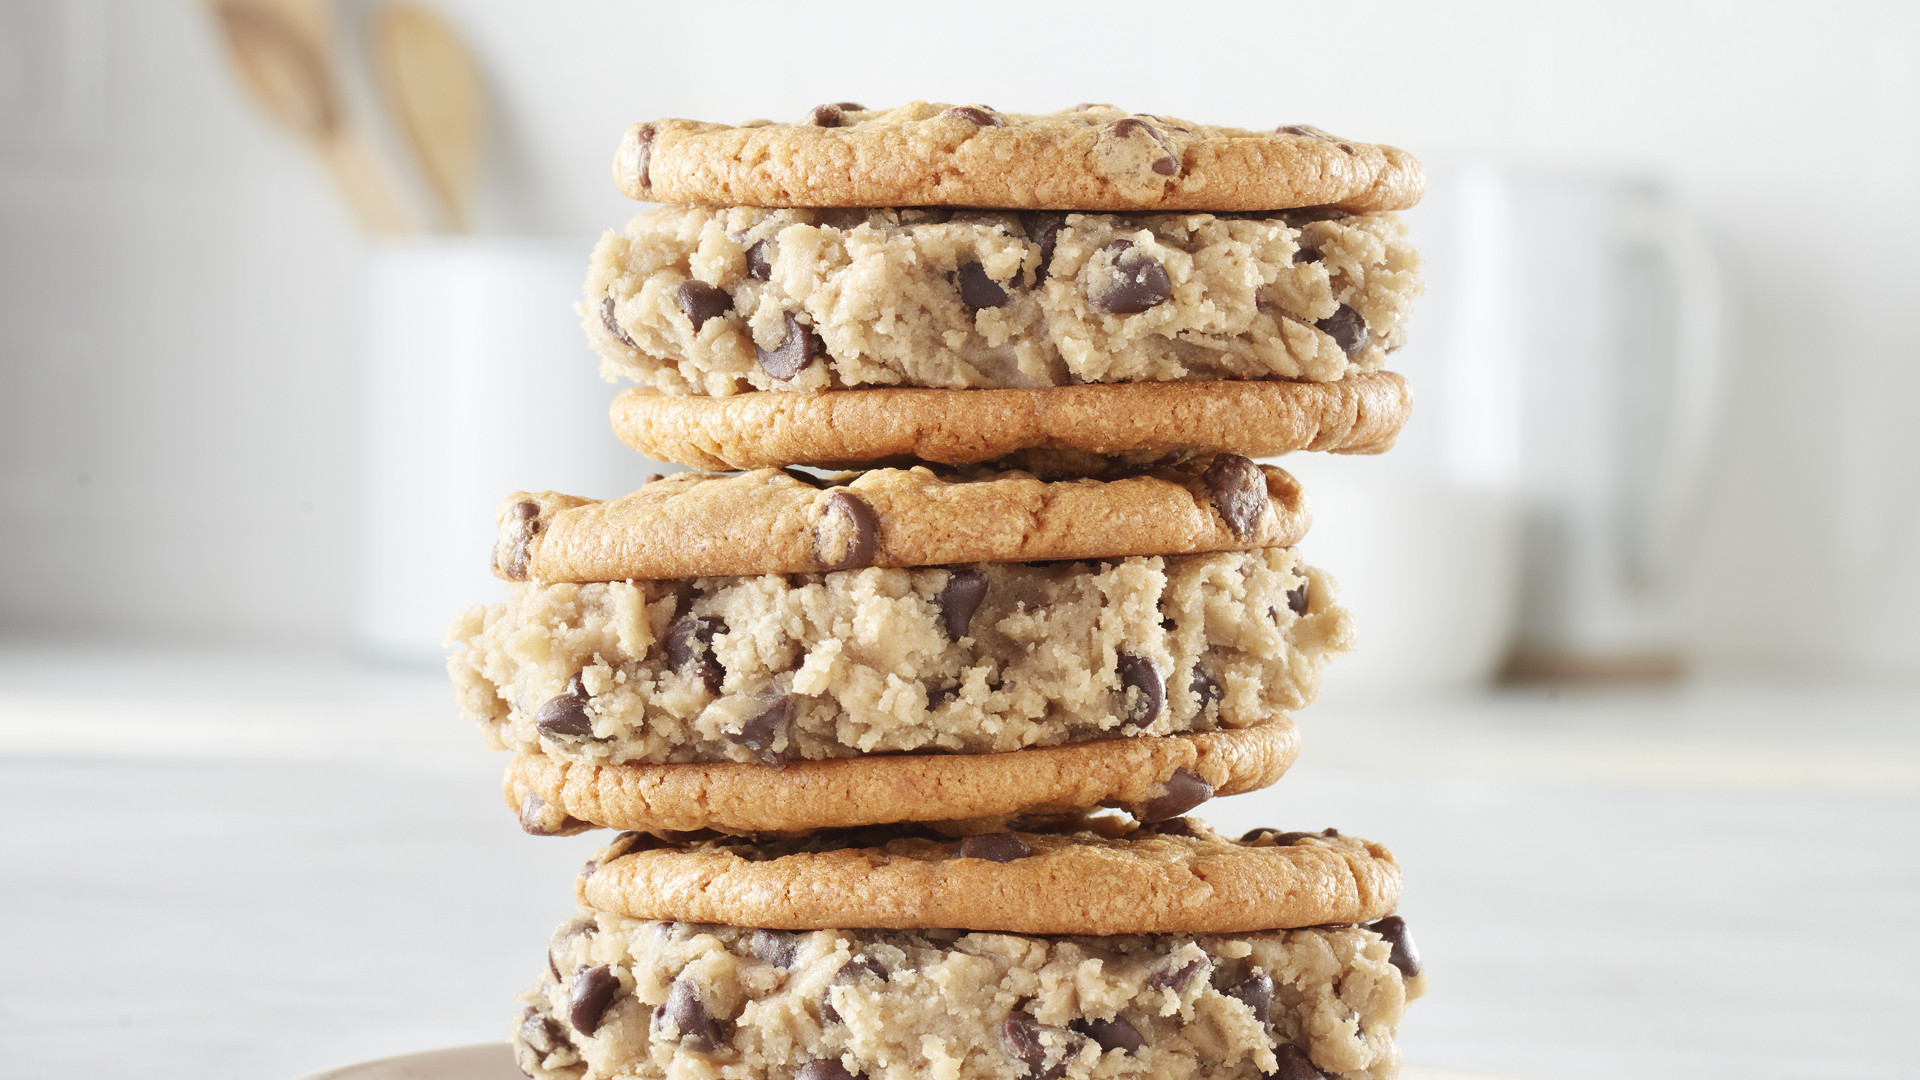 Cookie dough sandwiches with Pillsbury Safe To Eat Raw Cookie Dough